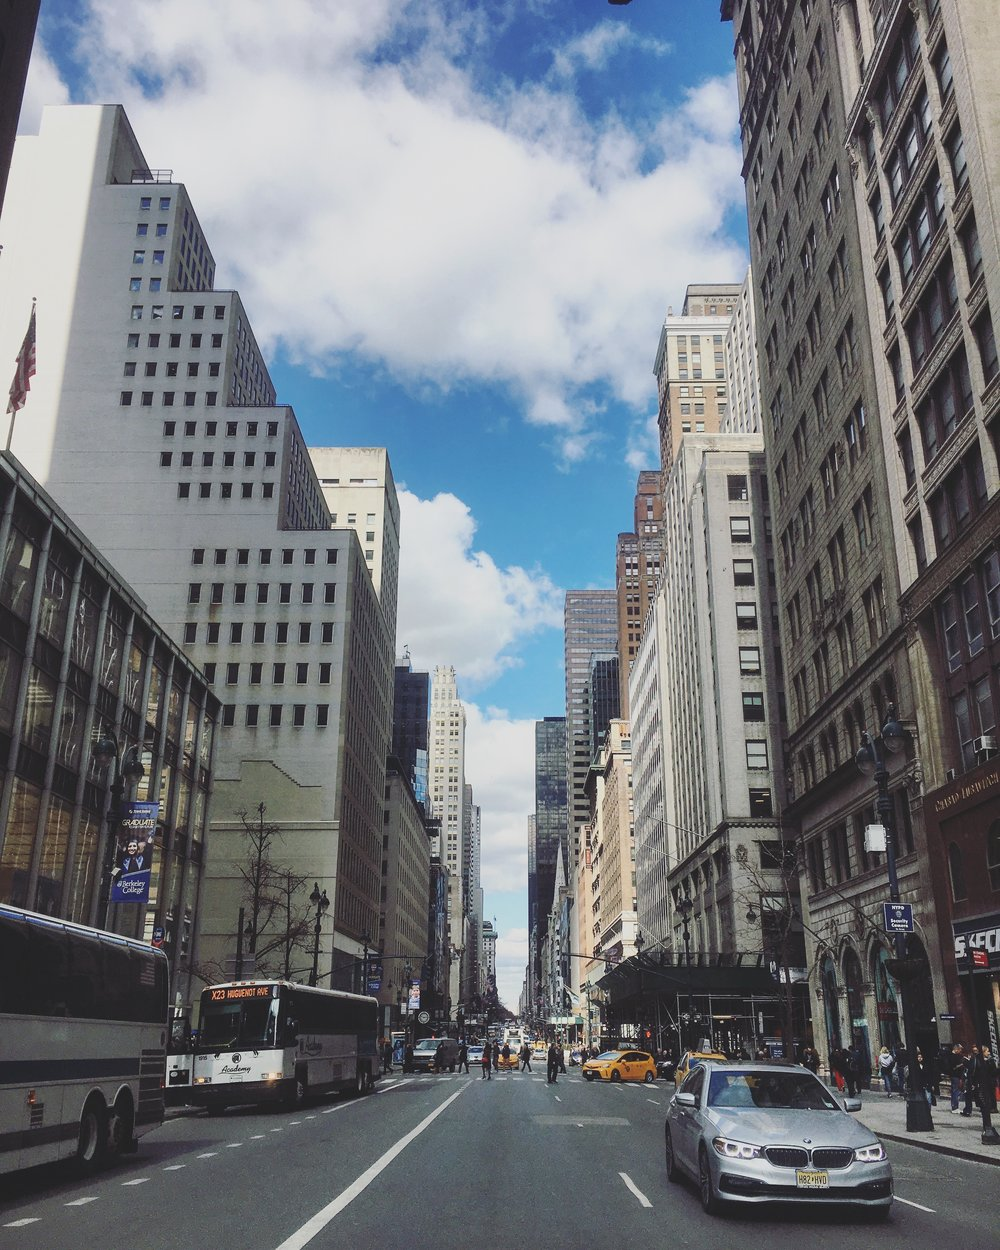 Shopping time on the 5th avenue! - #shopping